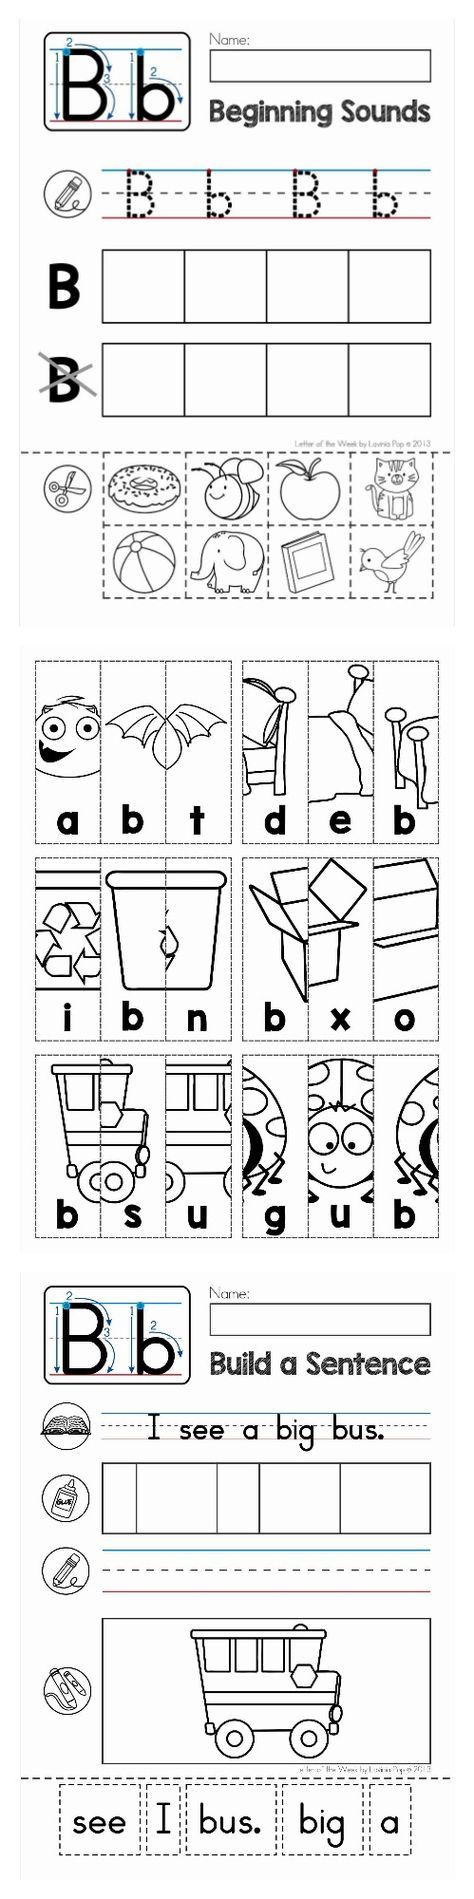 worksheet Alphablocks Worksheets 12 best alphablocks phonics images on pinterest teaching free letter of the week resource jam packed with worksheets and activities